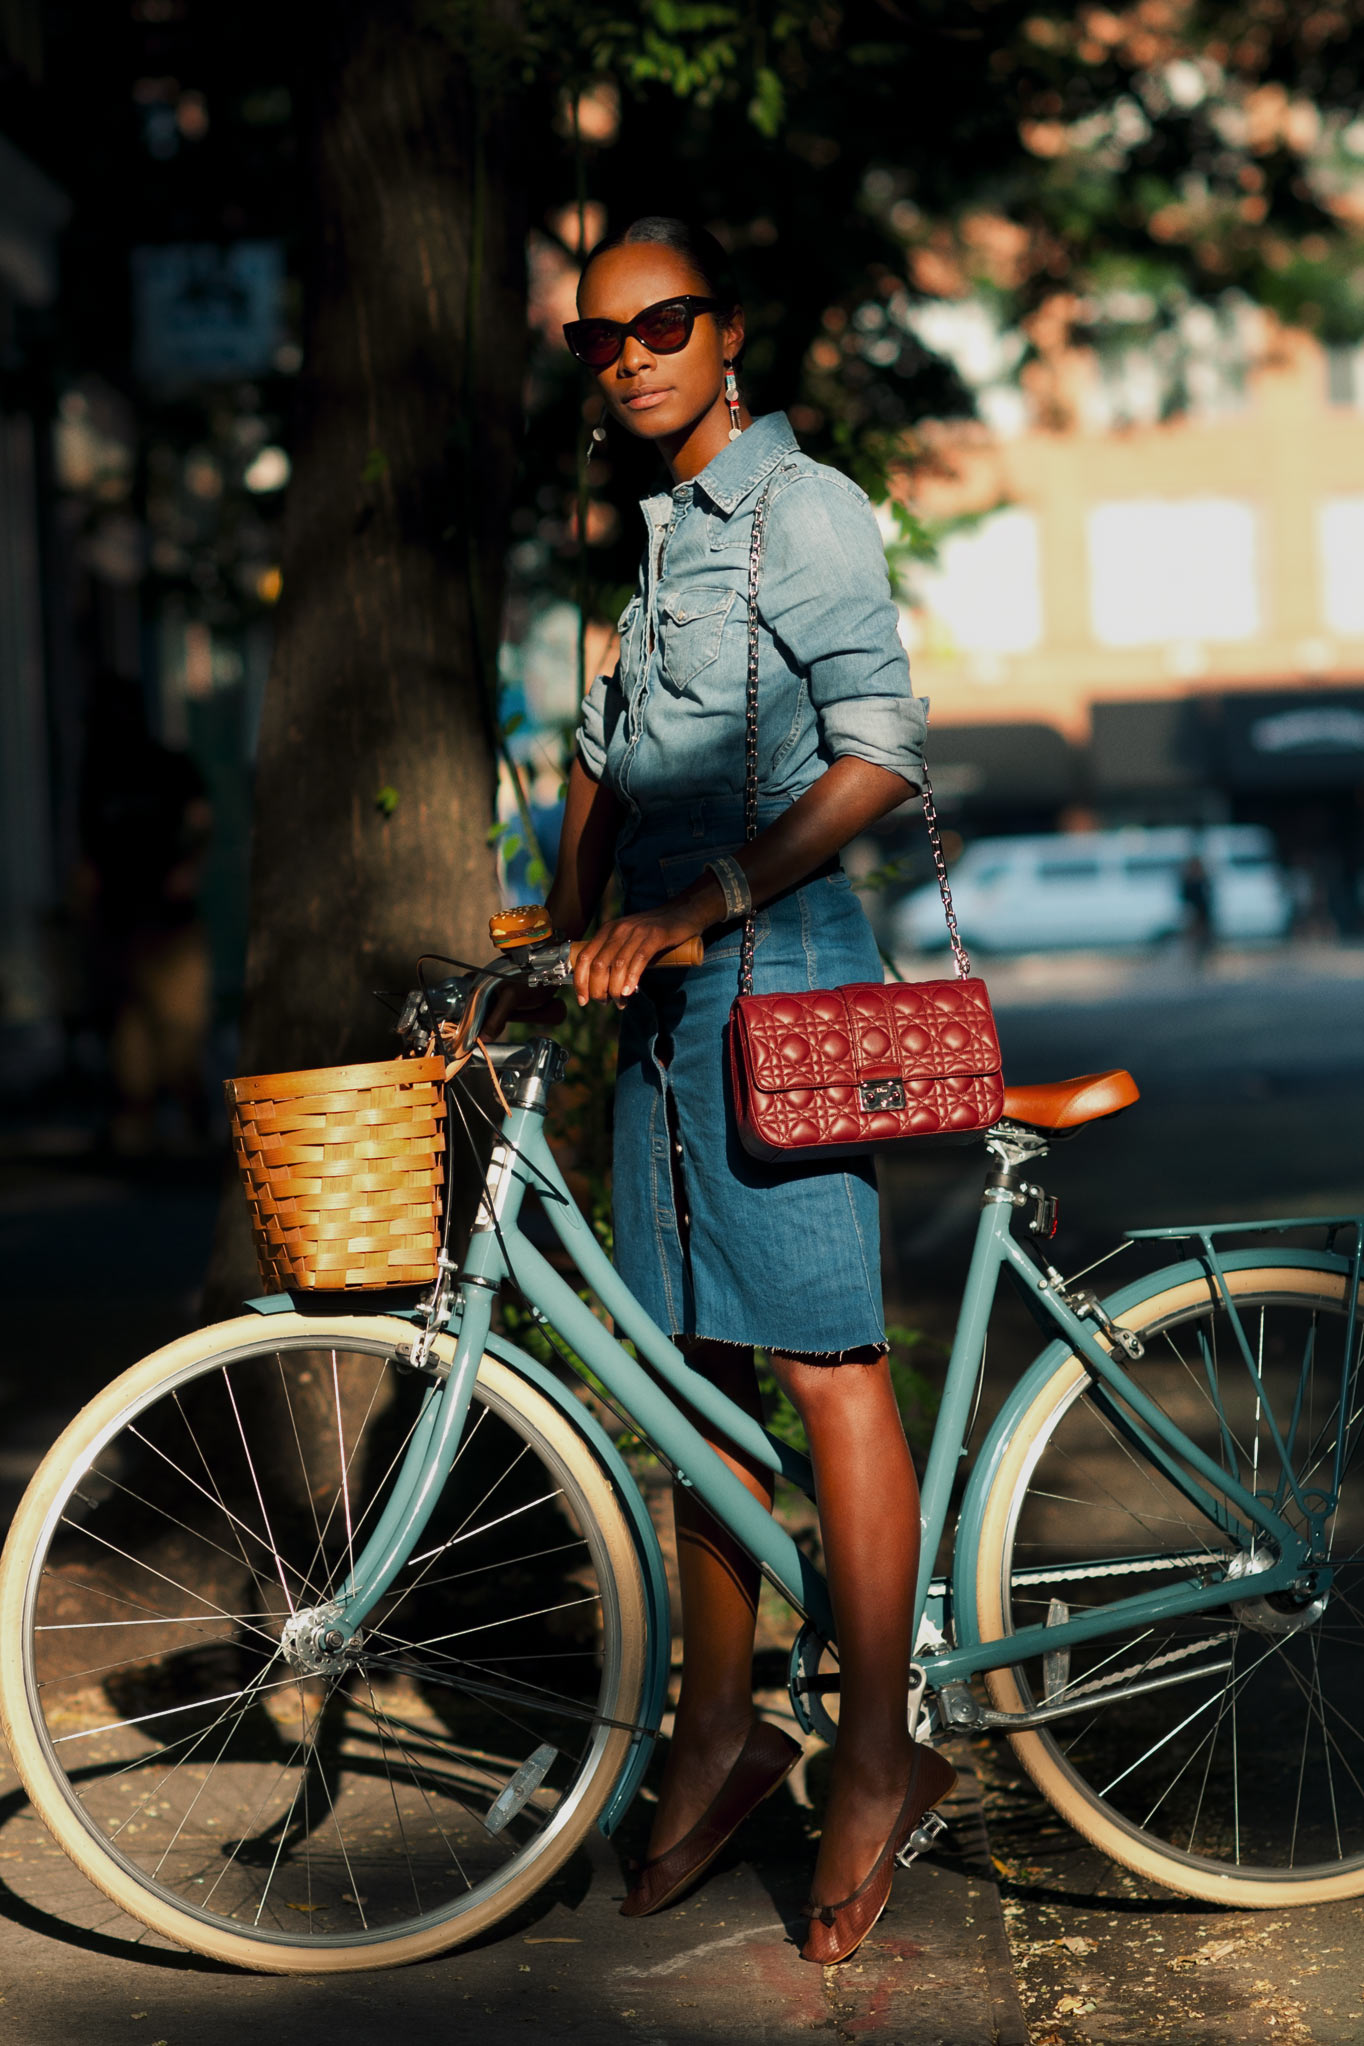 Shala Monroque: Bicycle